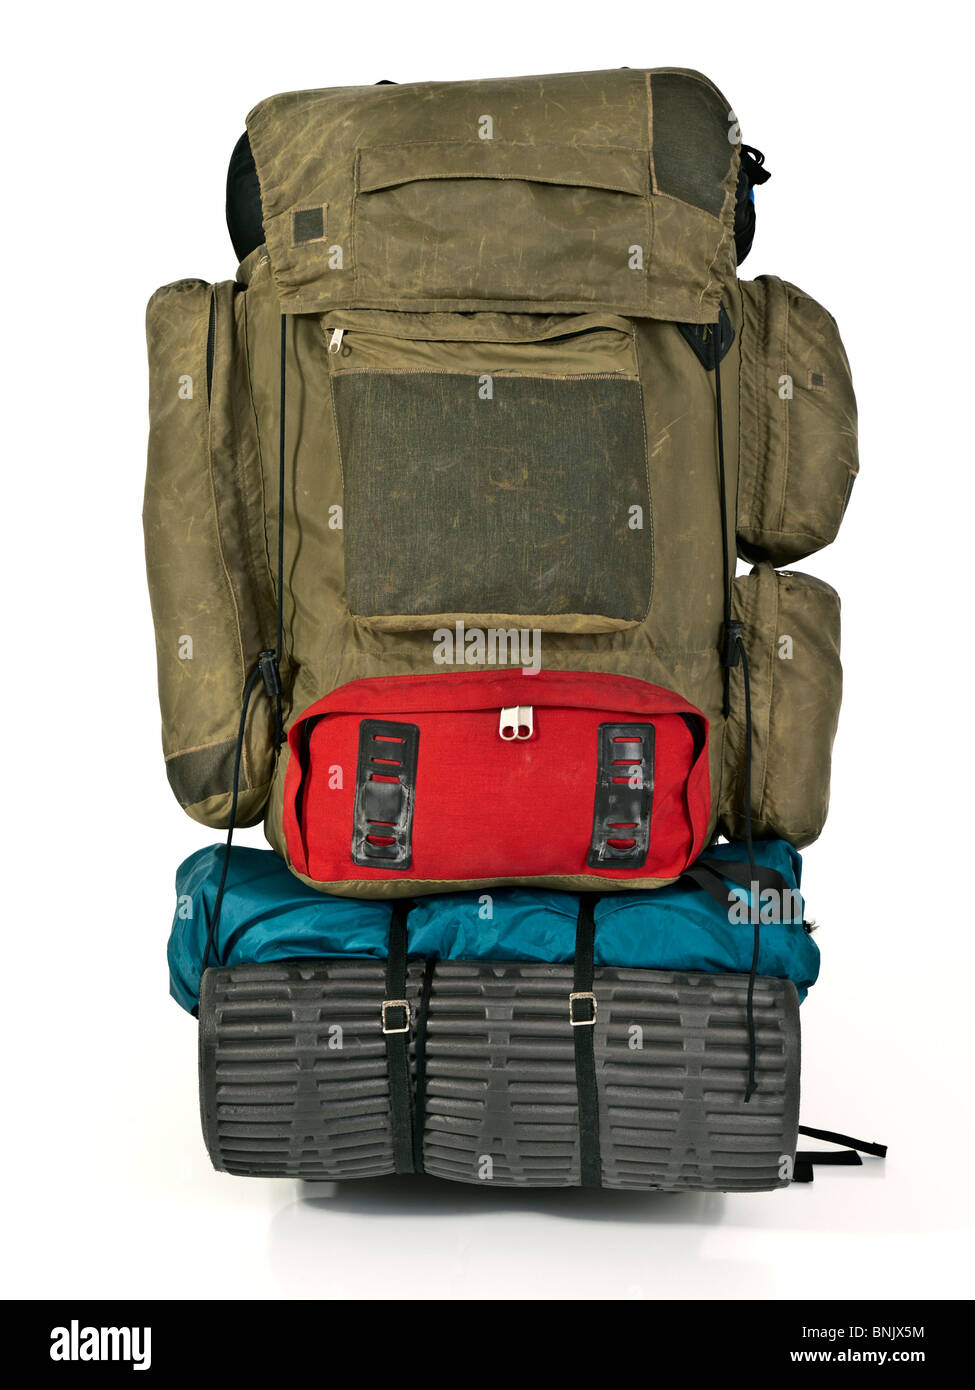 Thirty year old backpack. Patched and thrashed from many high elevation adventures. - Stock Image